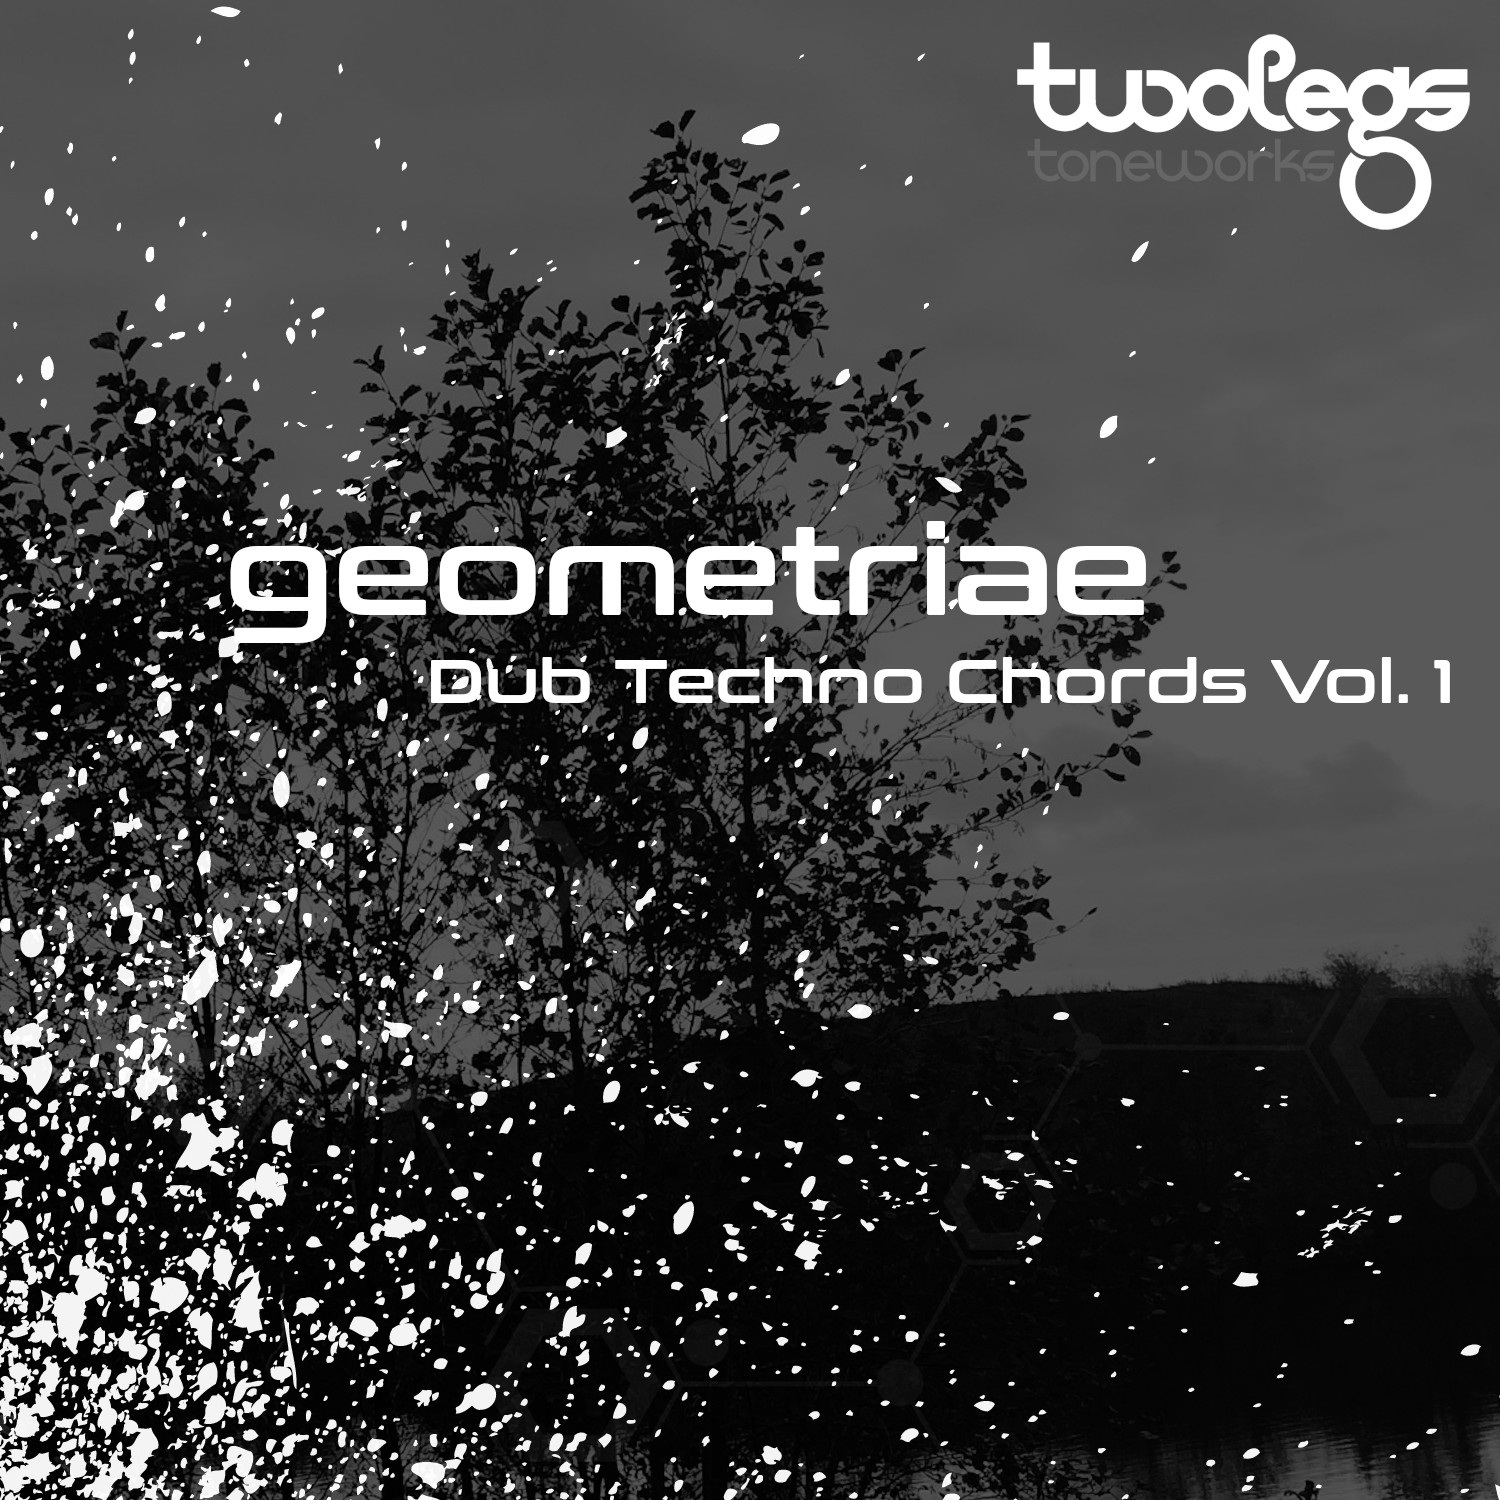 Dub Techno Chords Vol. 1